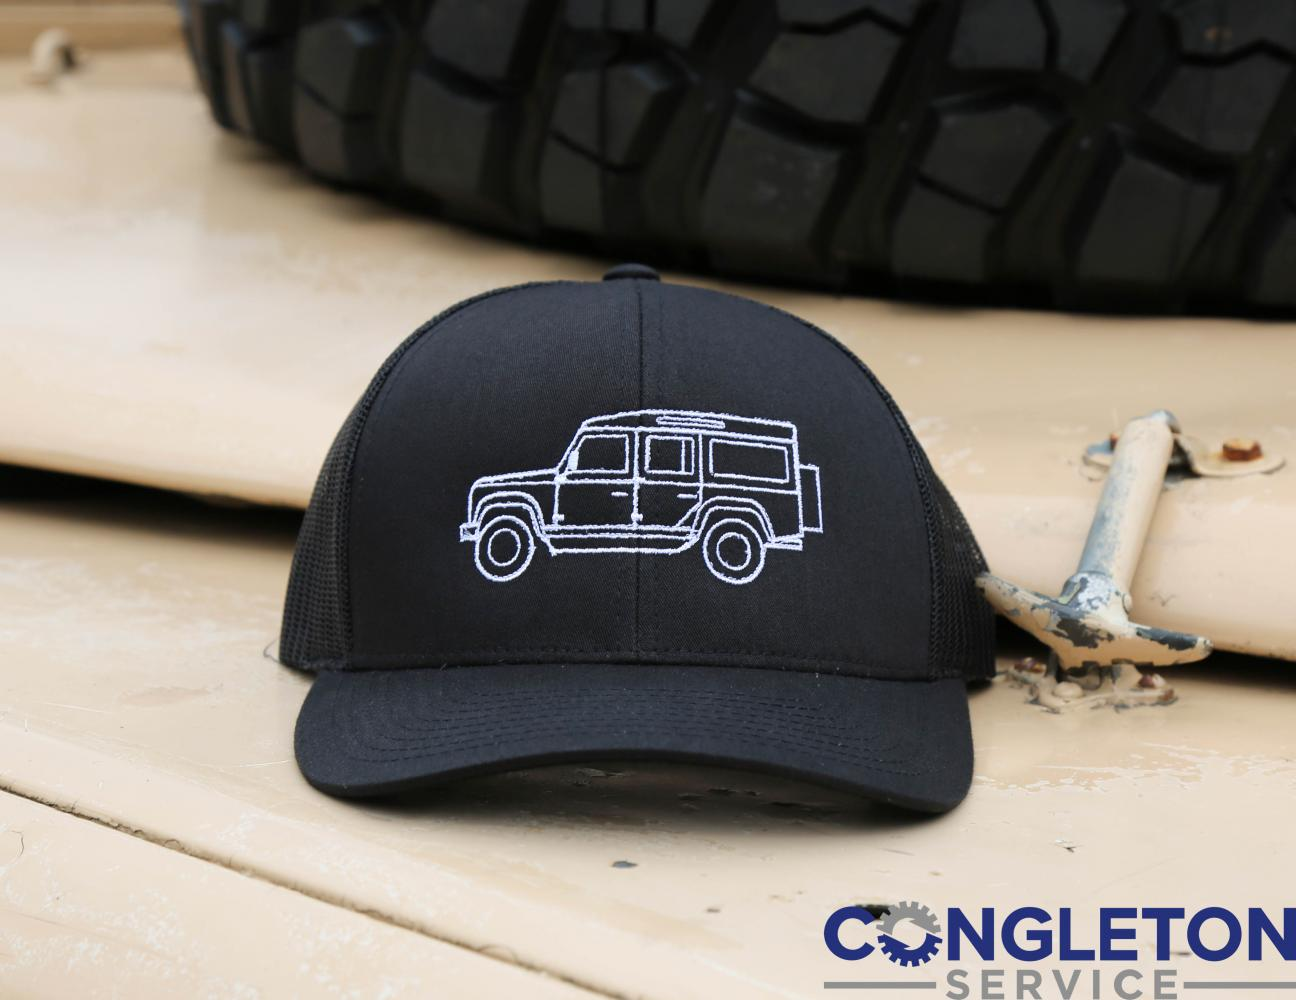 Click image for larger version  Name:@CongletonService-987.jpg Views:88 Size:98.4 KB ID:396456